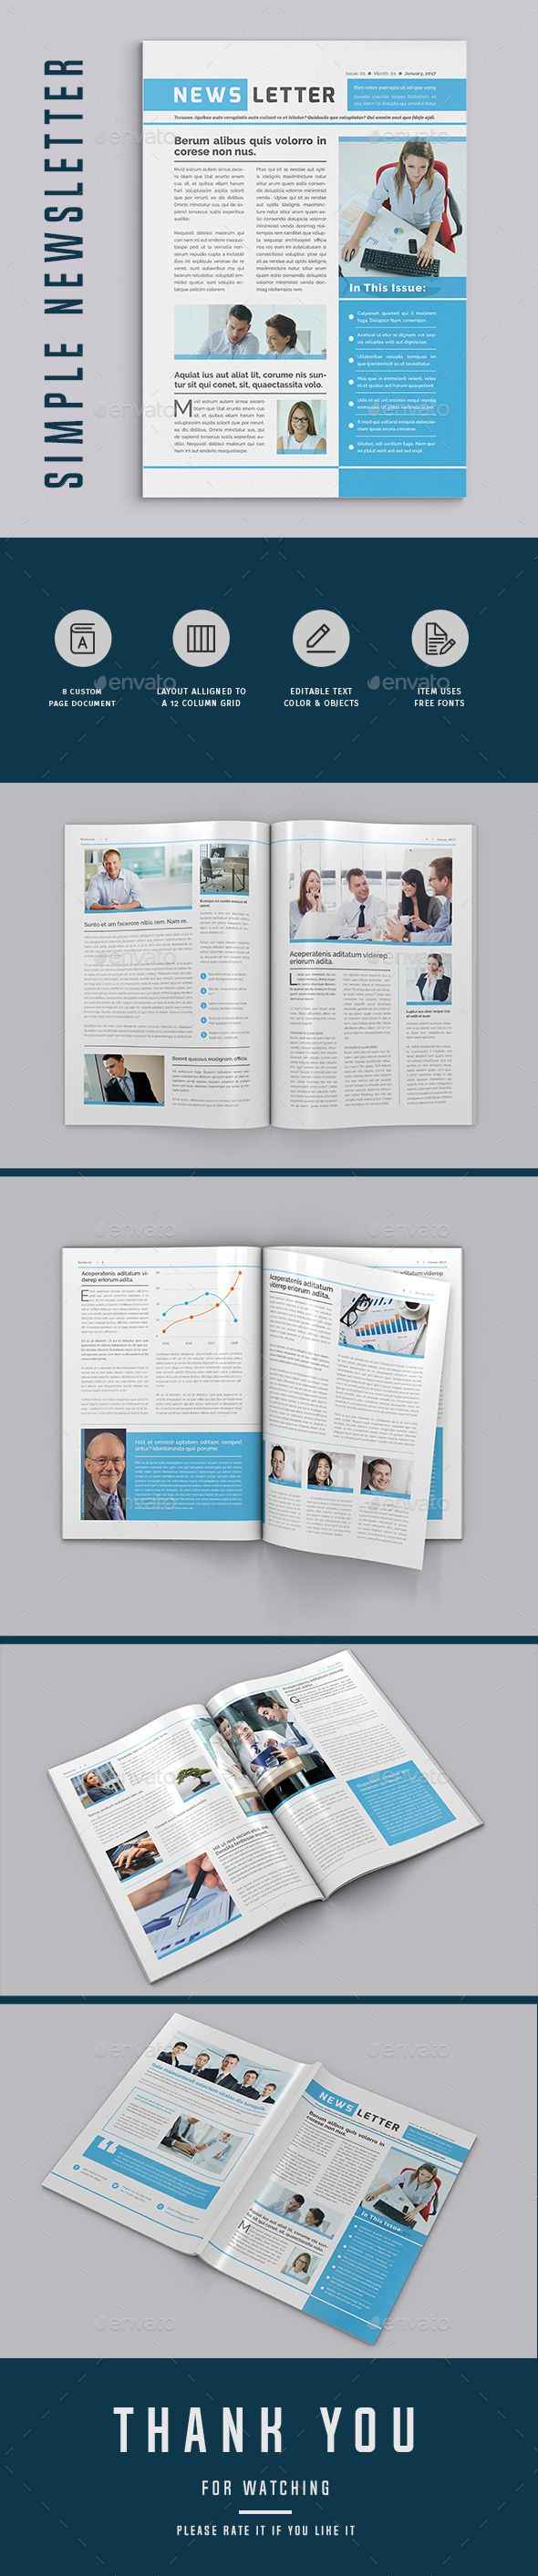 Newsletter By Upra Modern Template A 8 Page InDesign Company Business